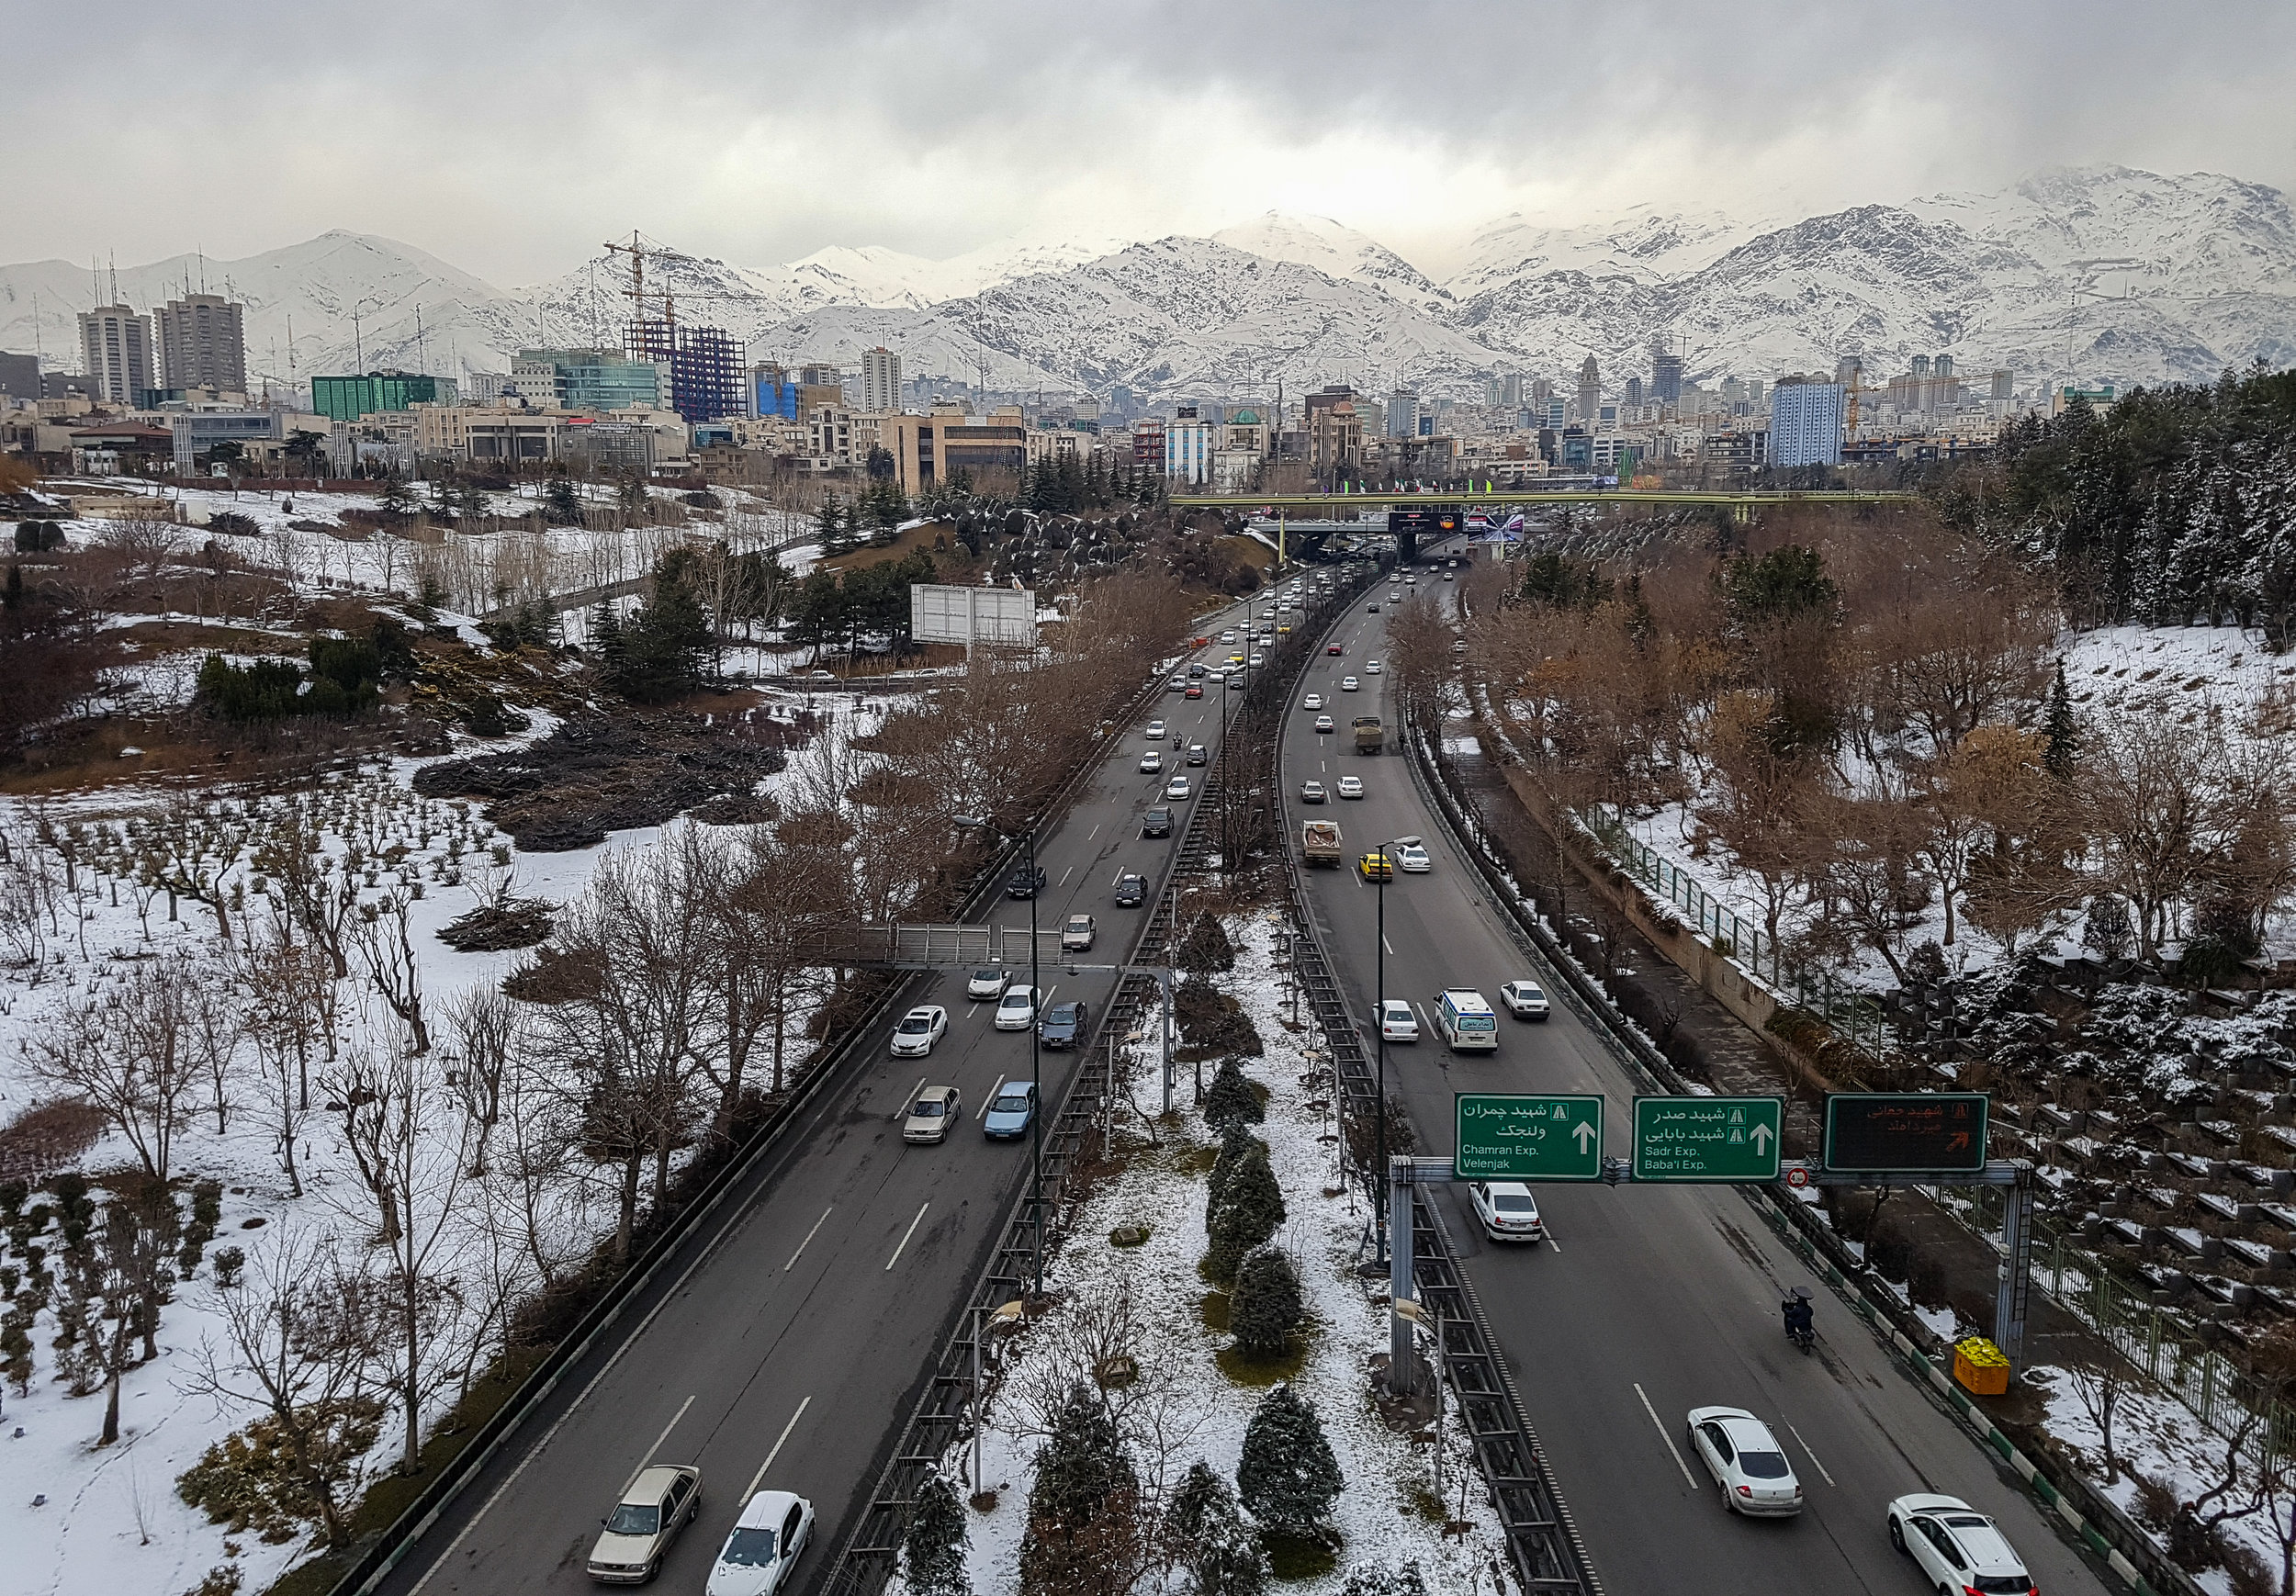 Tehran, the capital and the largest city of Iran